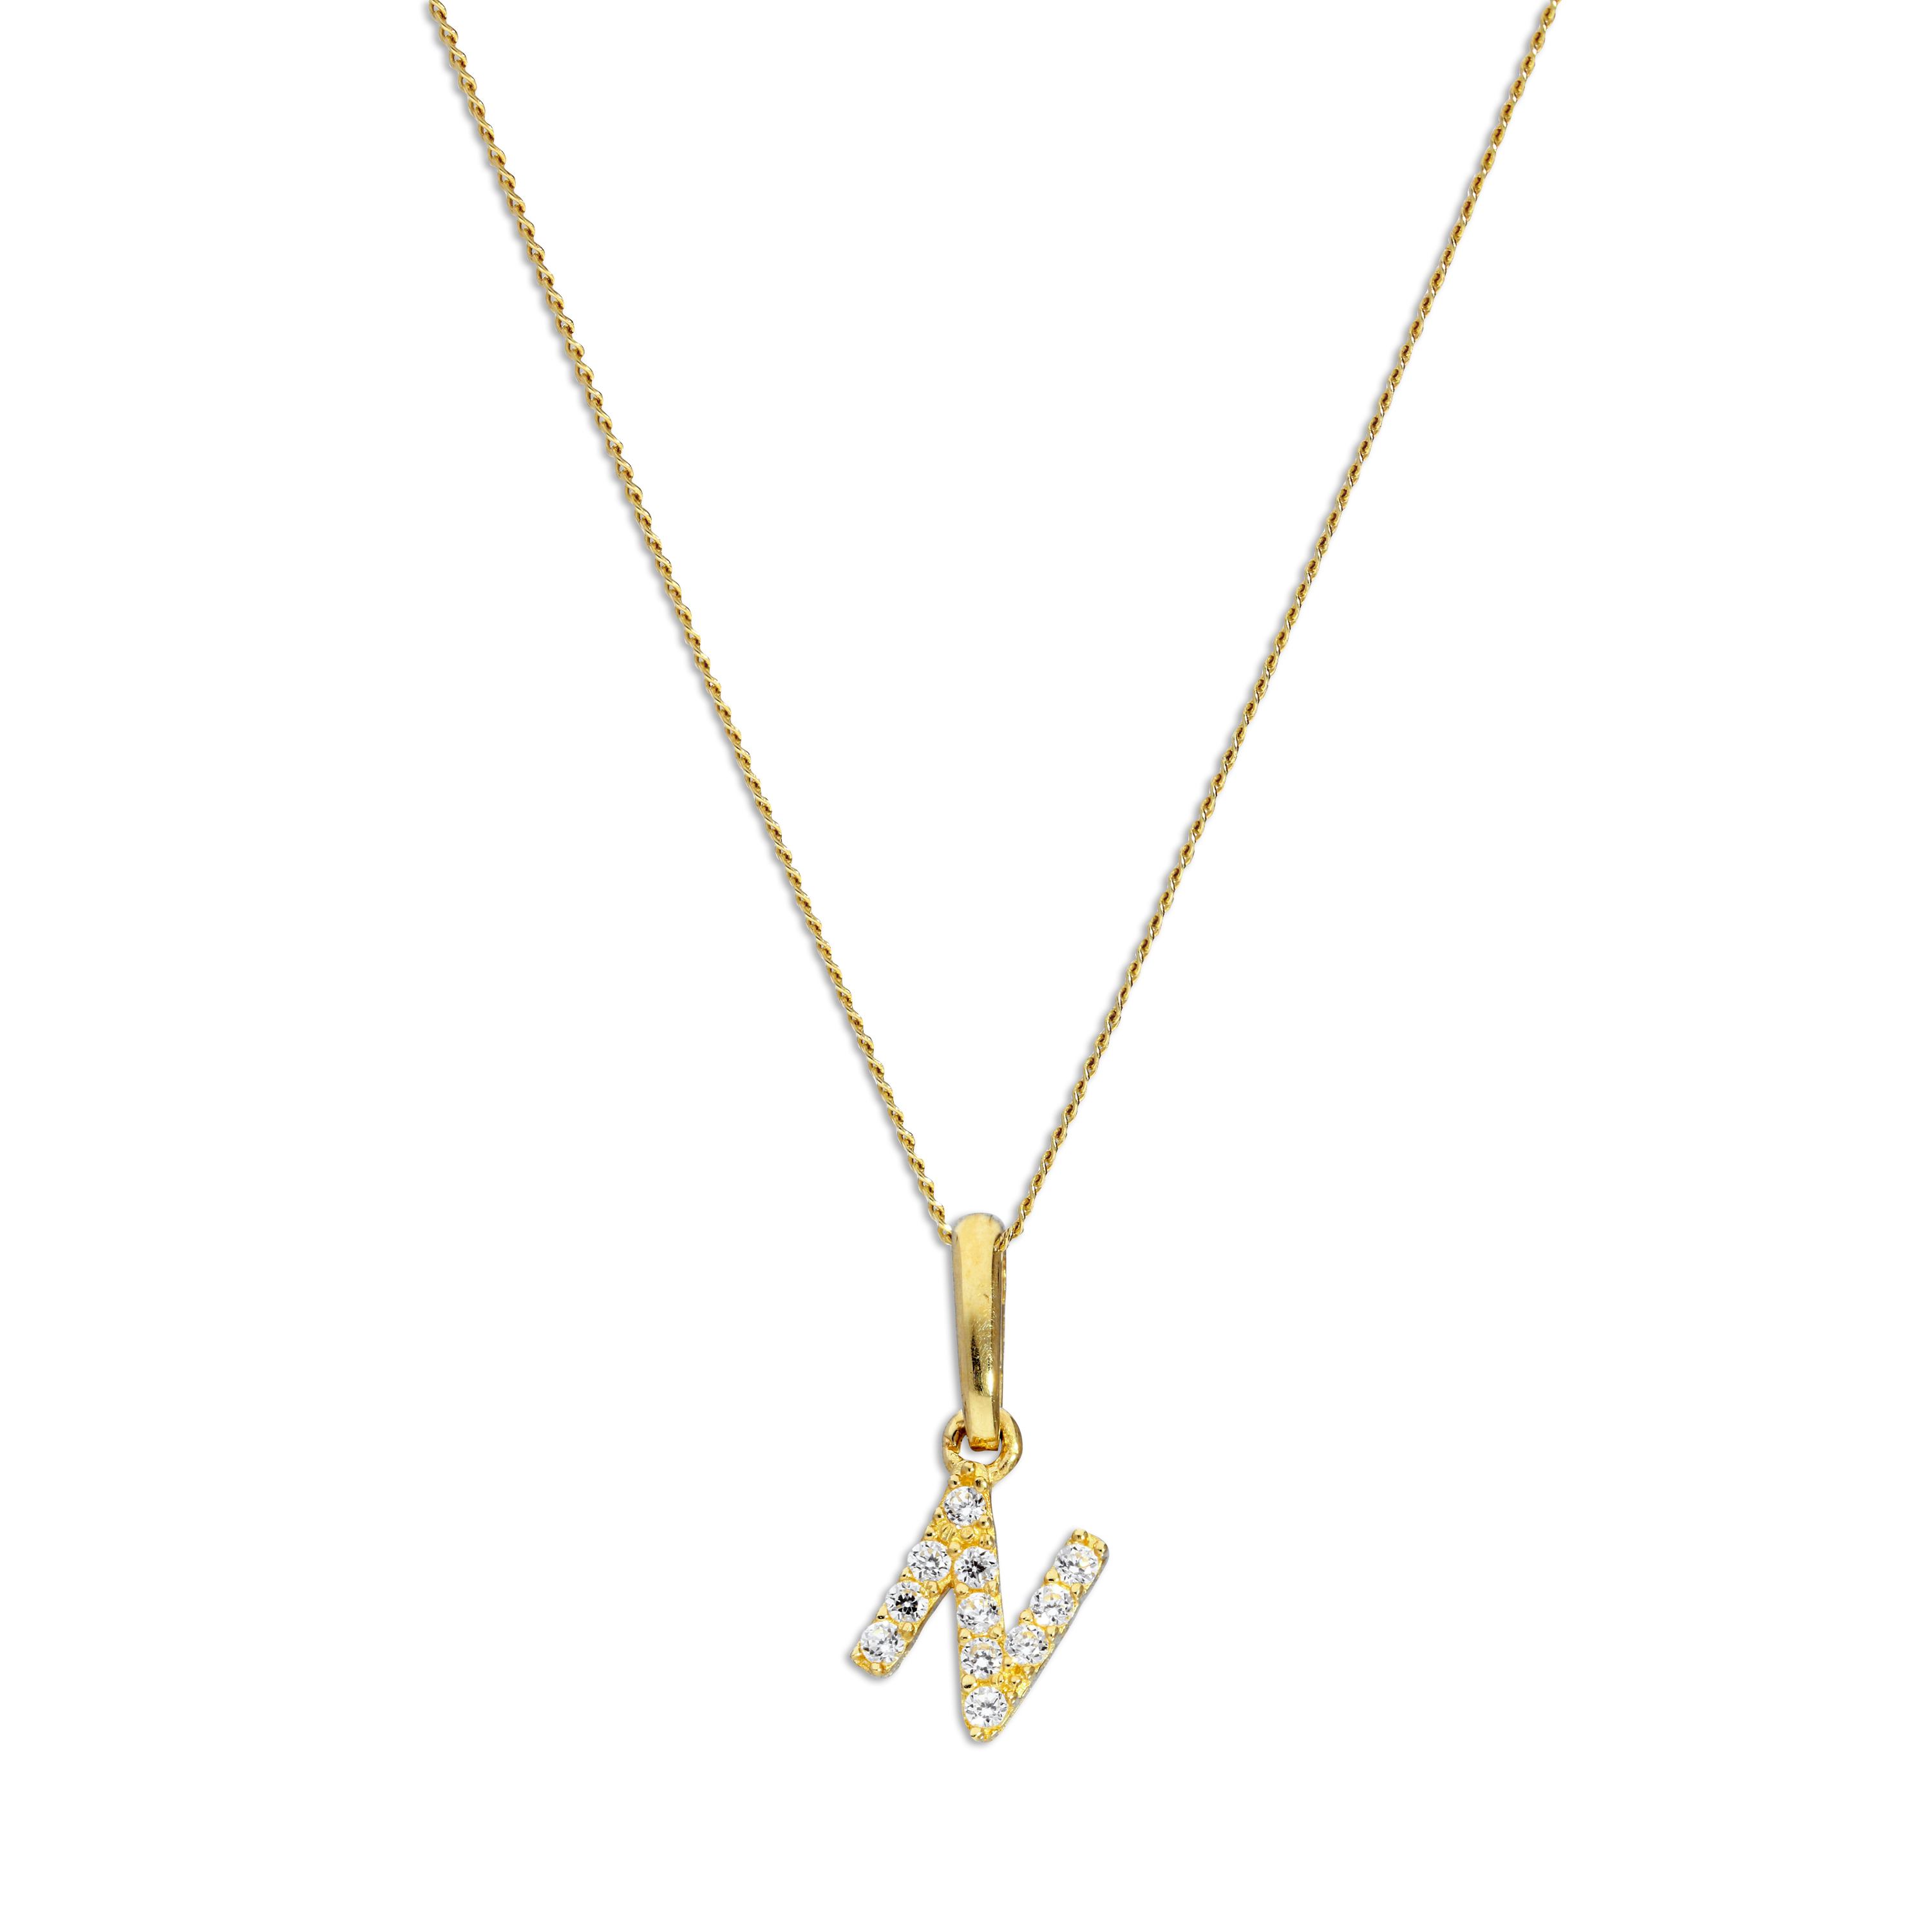 An image of 9ct Gold Clear CZ Crystal Script Alphabet Letter N Necklace 16 Inches Chain